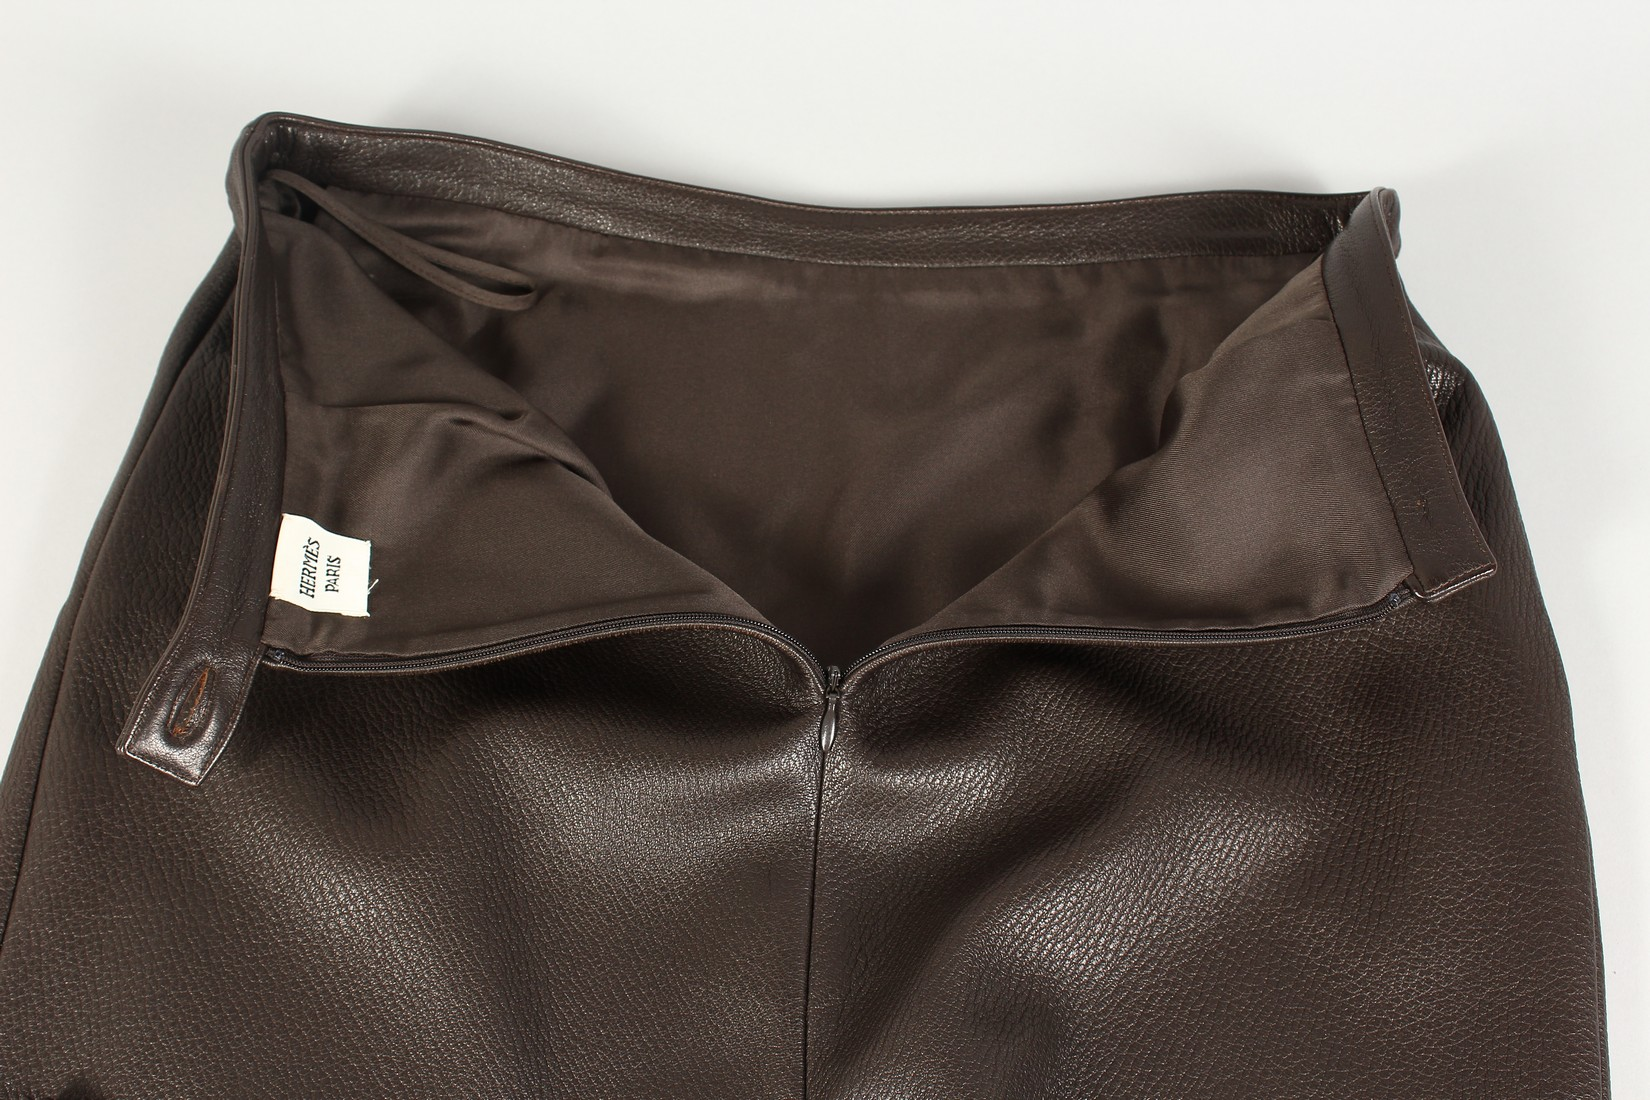 A HERMES LEATHER SKIRT, never worn. - Image 6 of 6